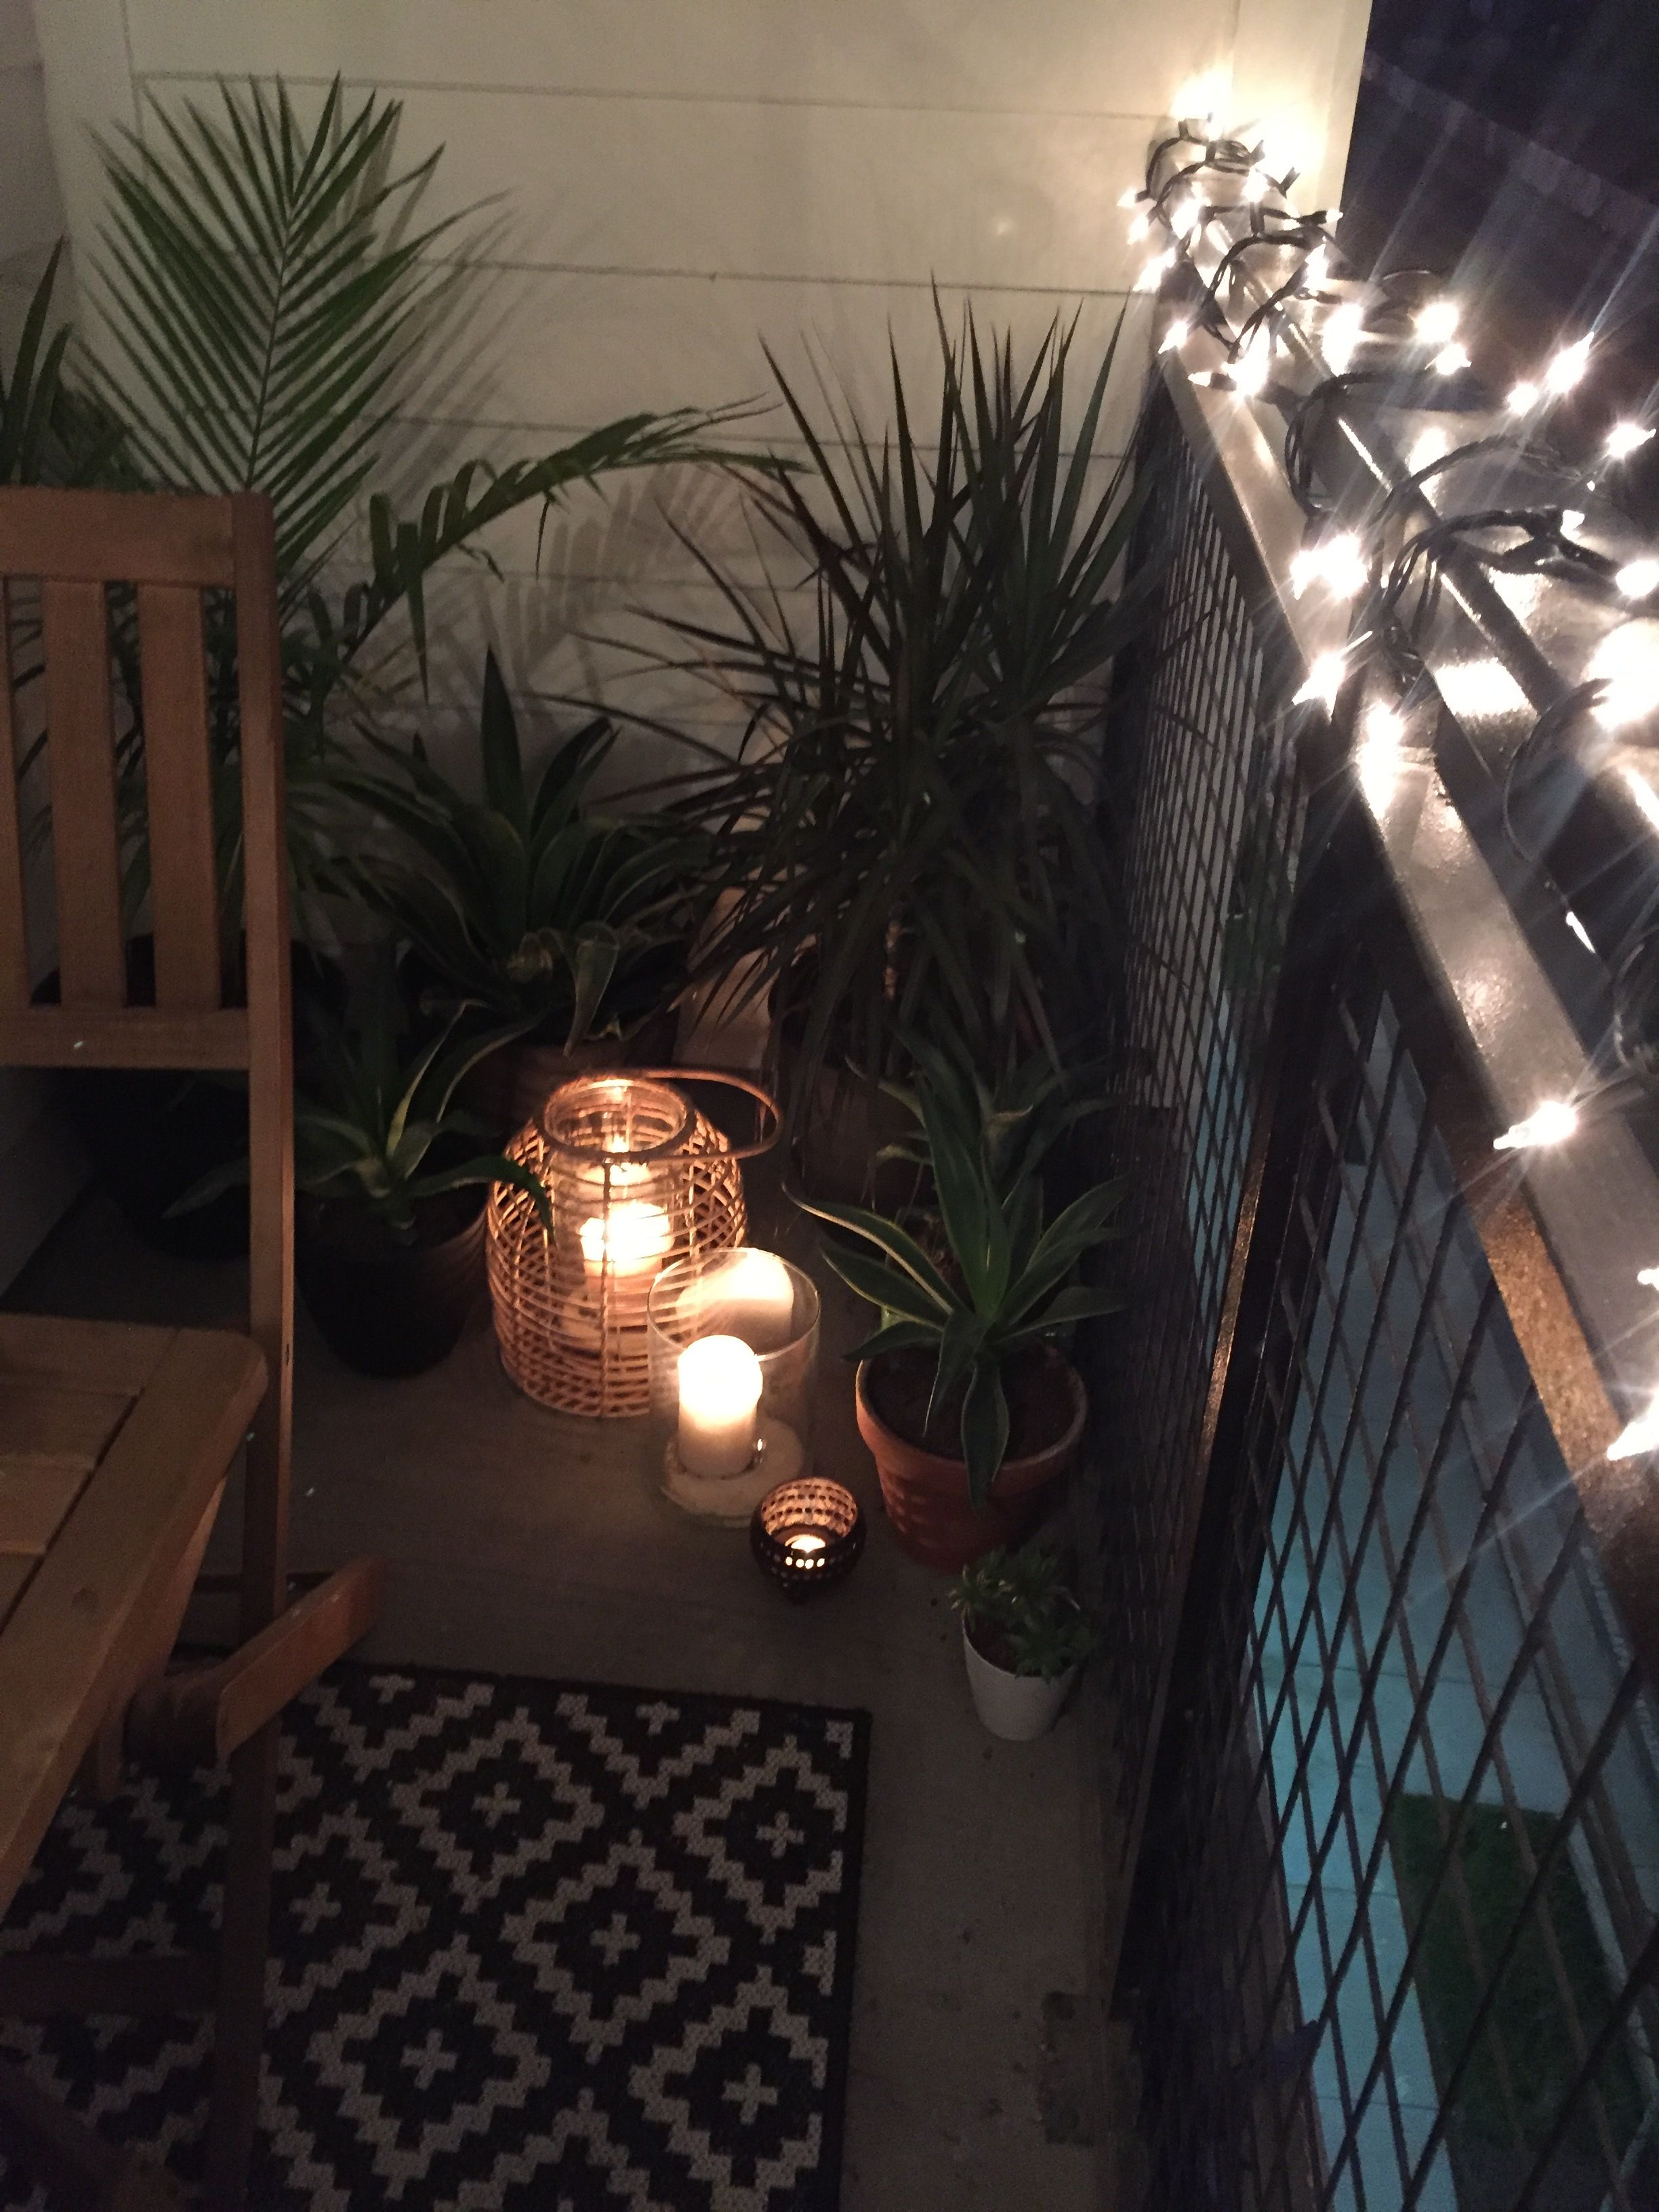 Plants and lanterns small apartment balcony decor ideas balcony